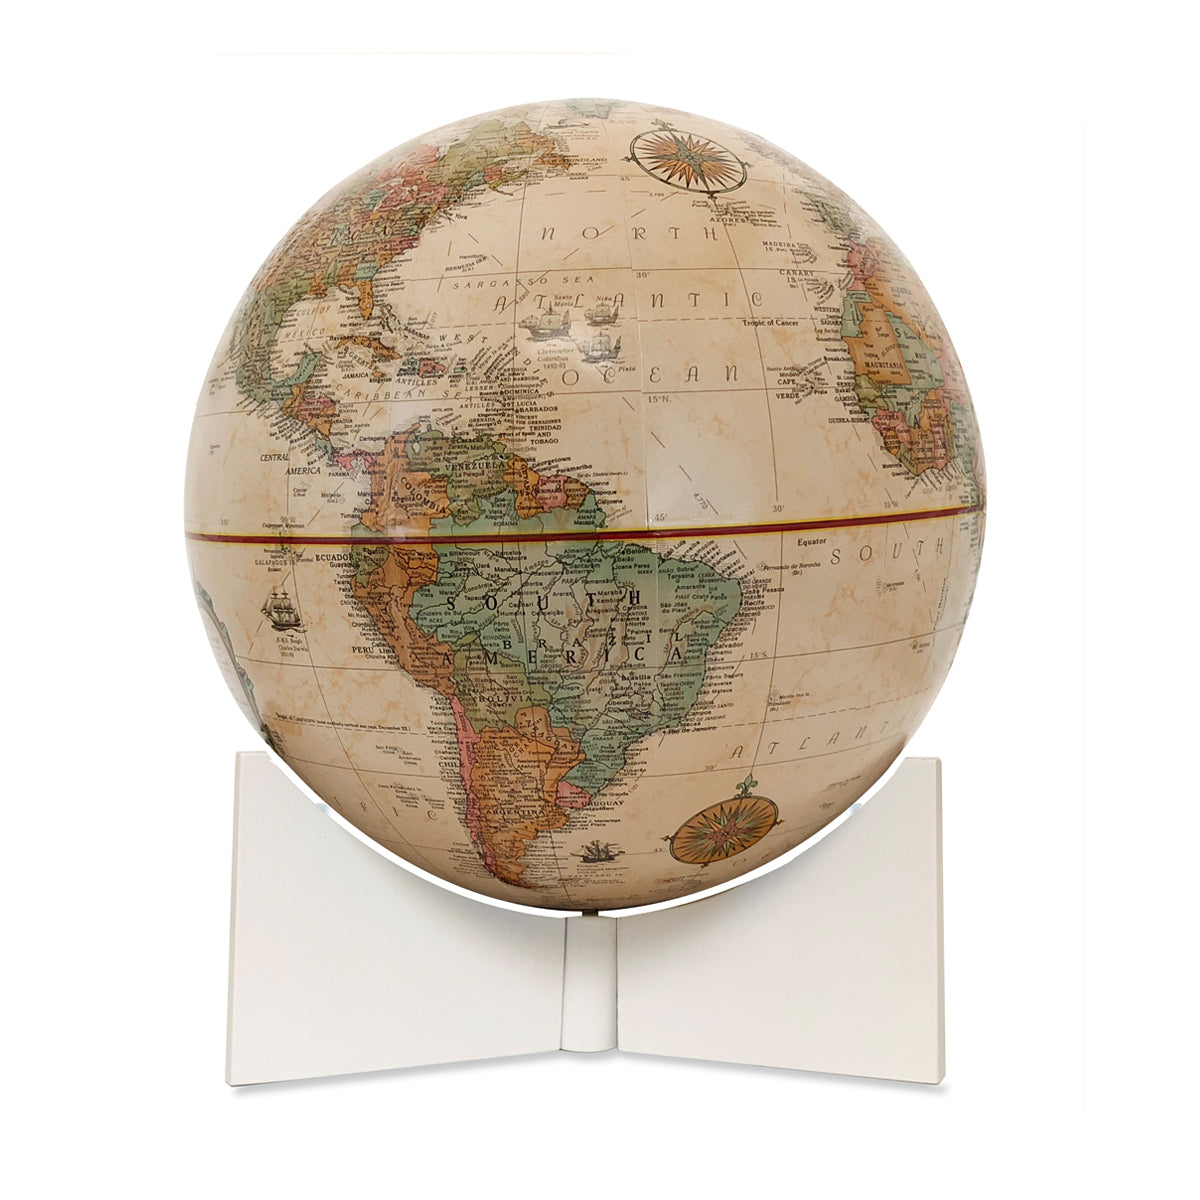 9 Inch Antique Classic Desk Globe with White Base